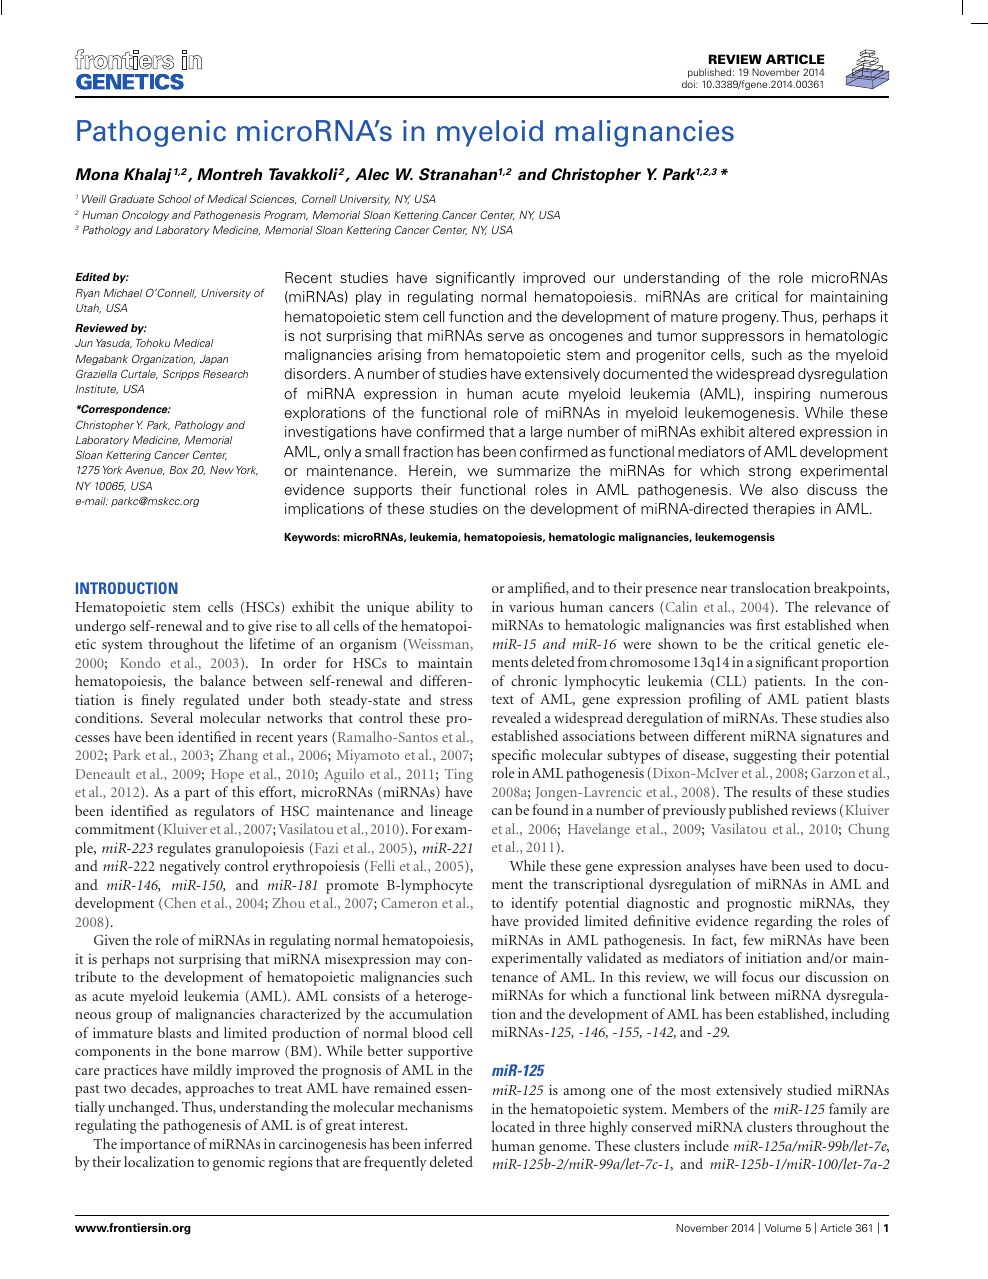 Pathogenic microRNA's in myeloid malignancies – topic of research